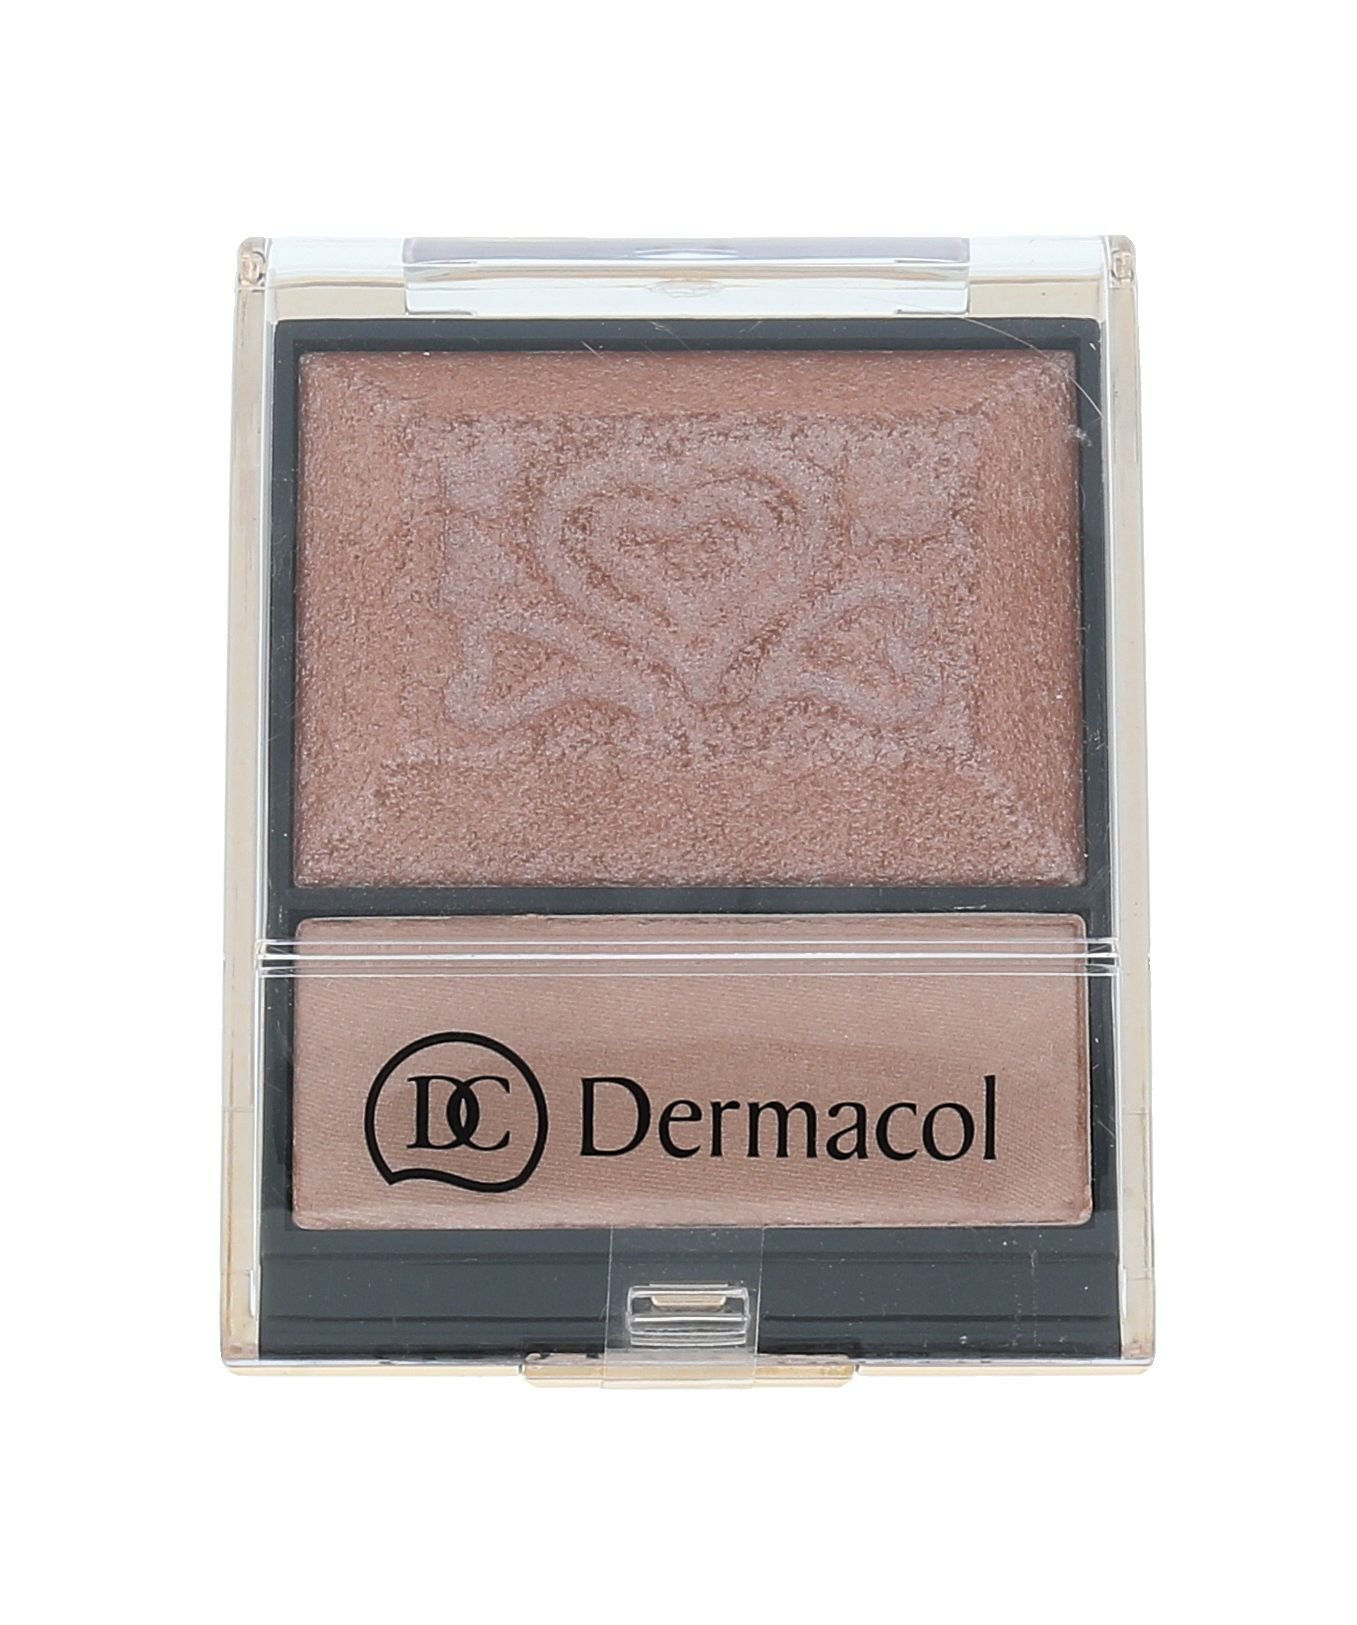 Dermacol Blush & Illuminator Cosmetic 9ml 5